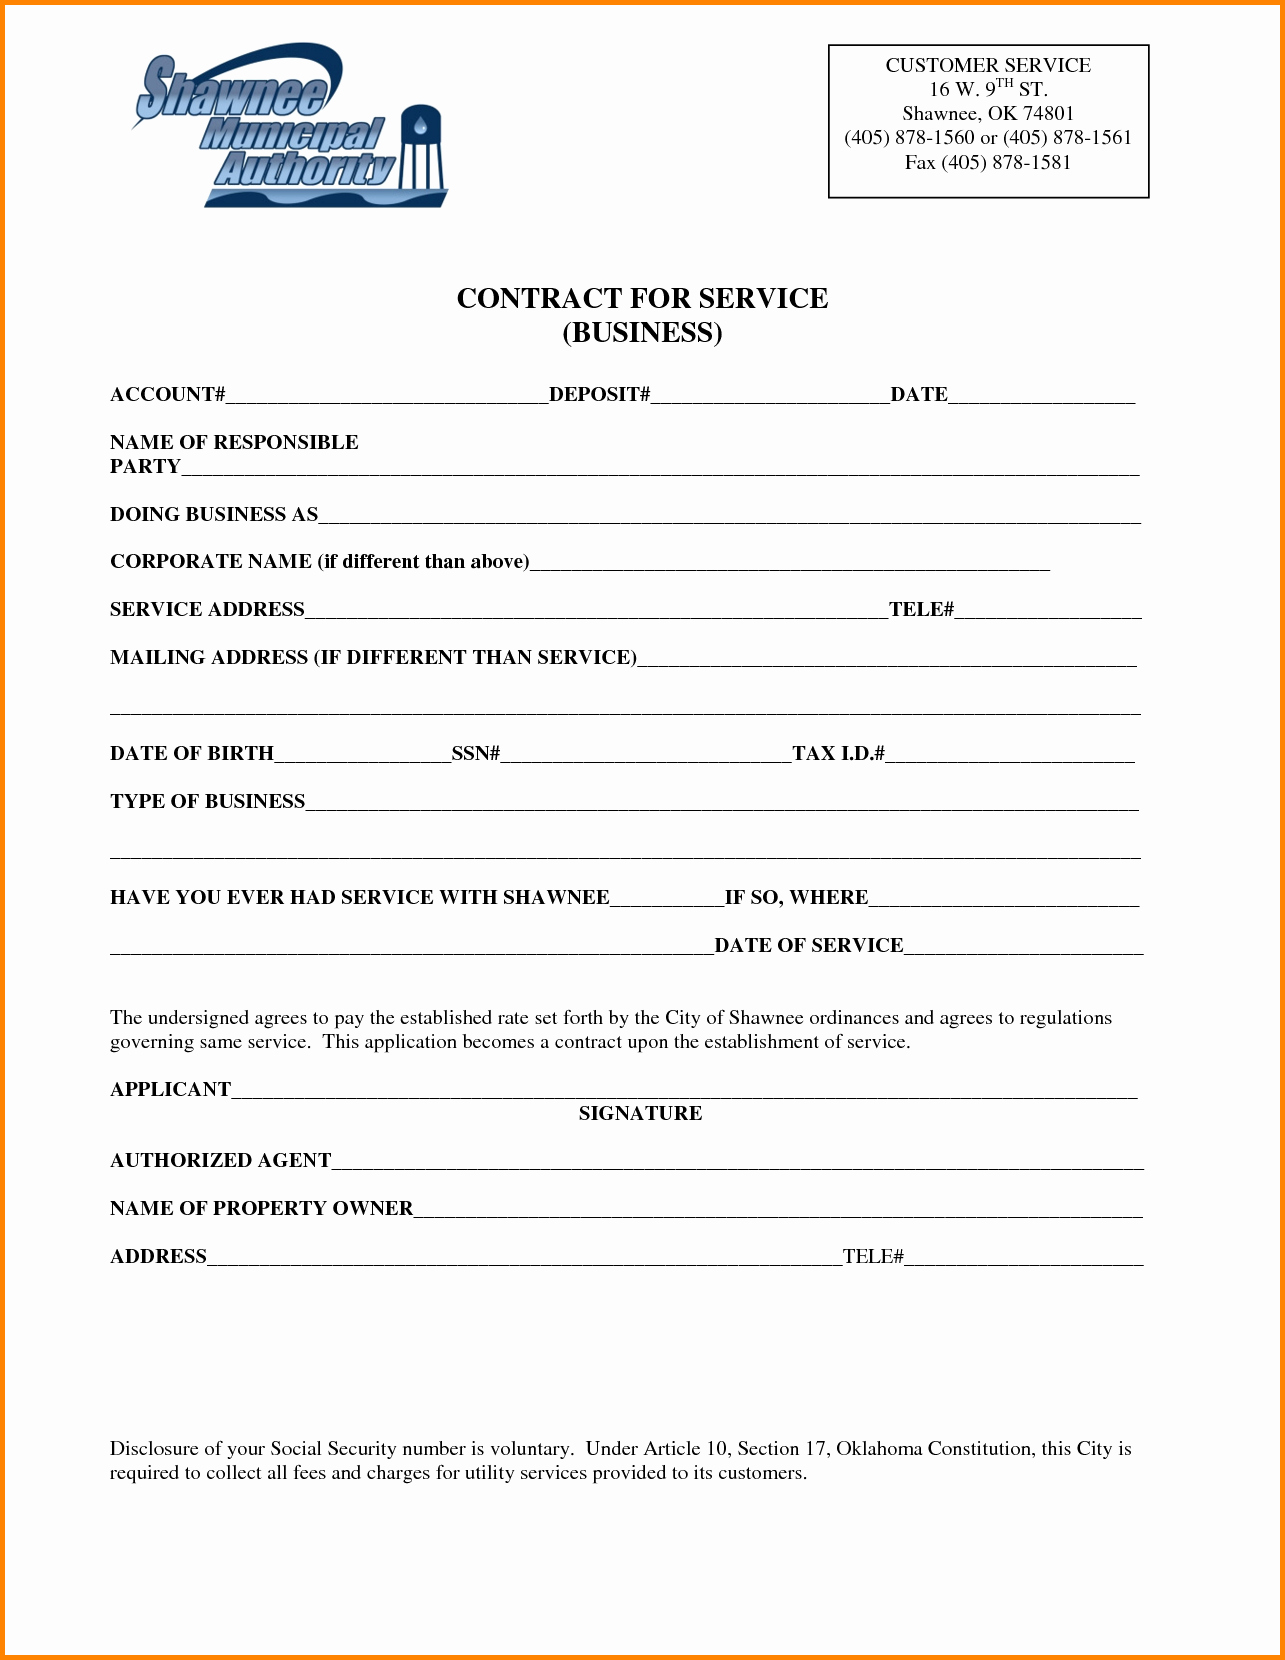 Business Service Contract Template Awesome Business Service Contract Template Portablegasgrillweber